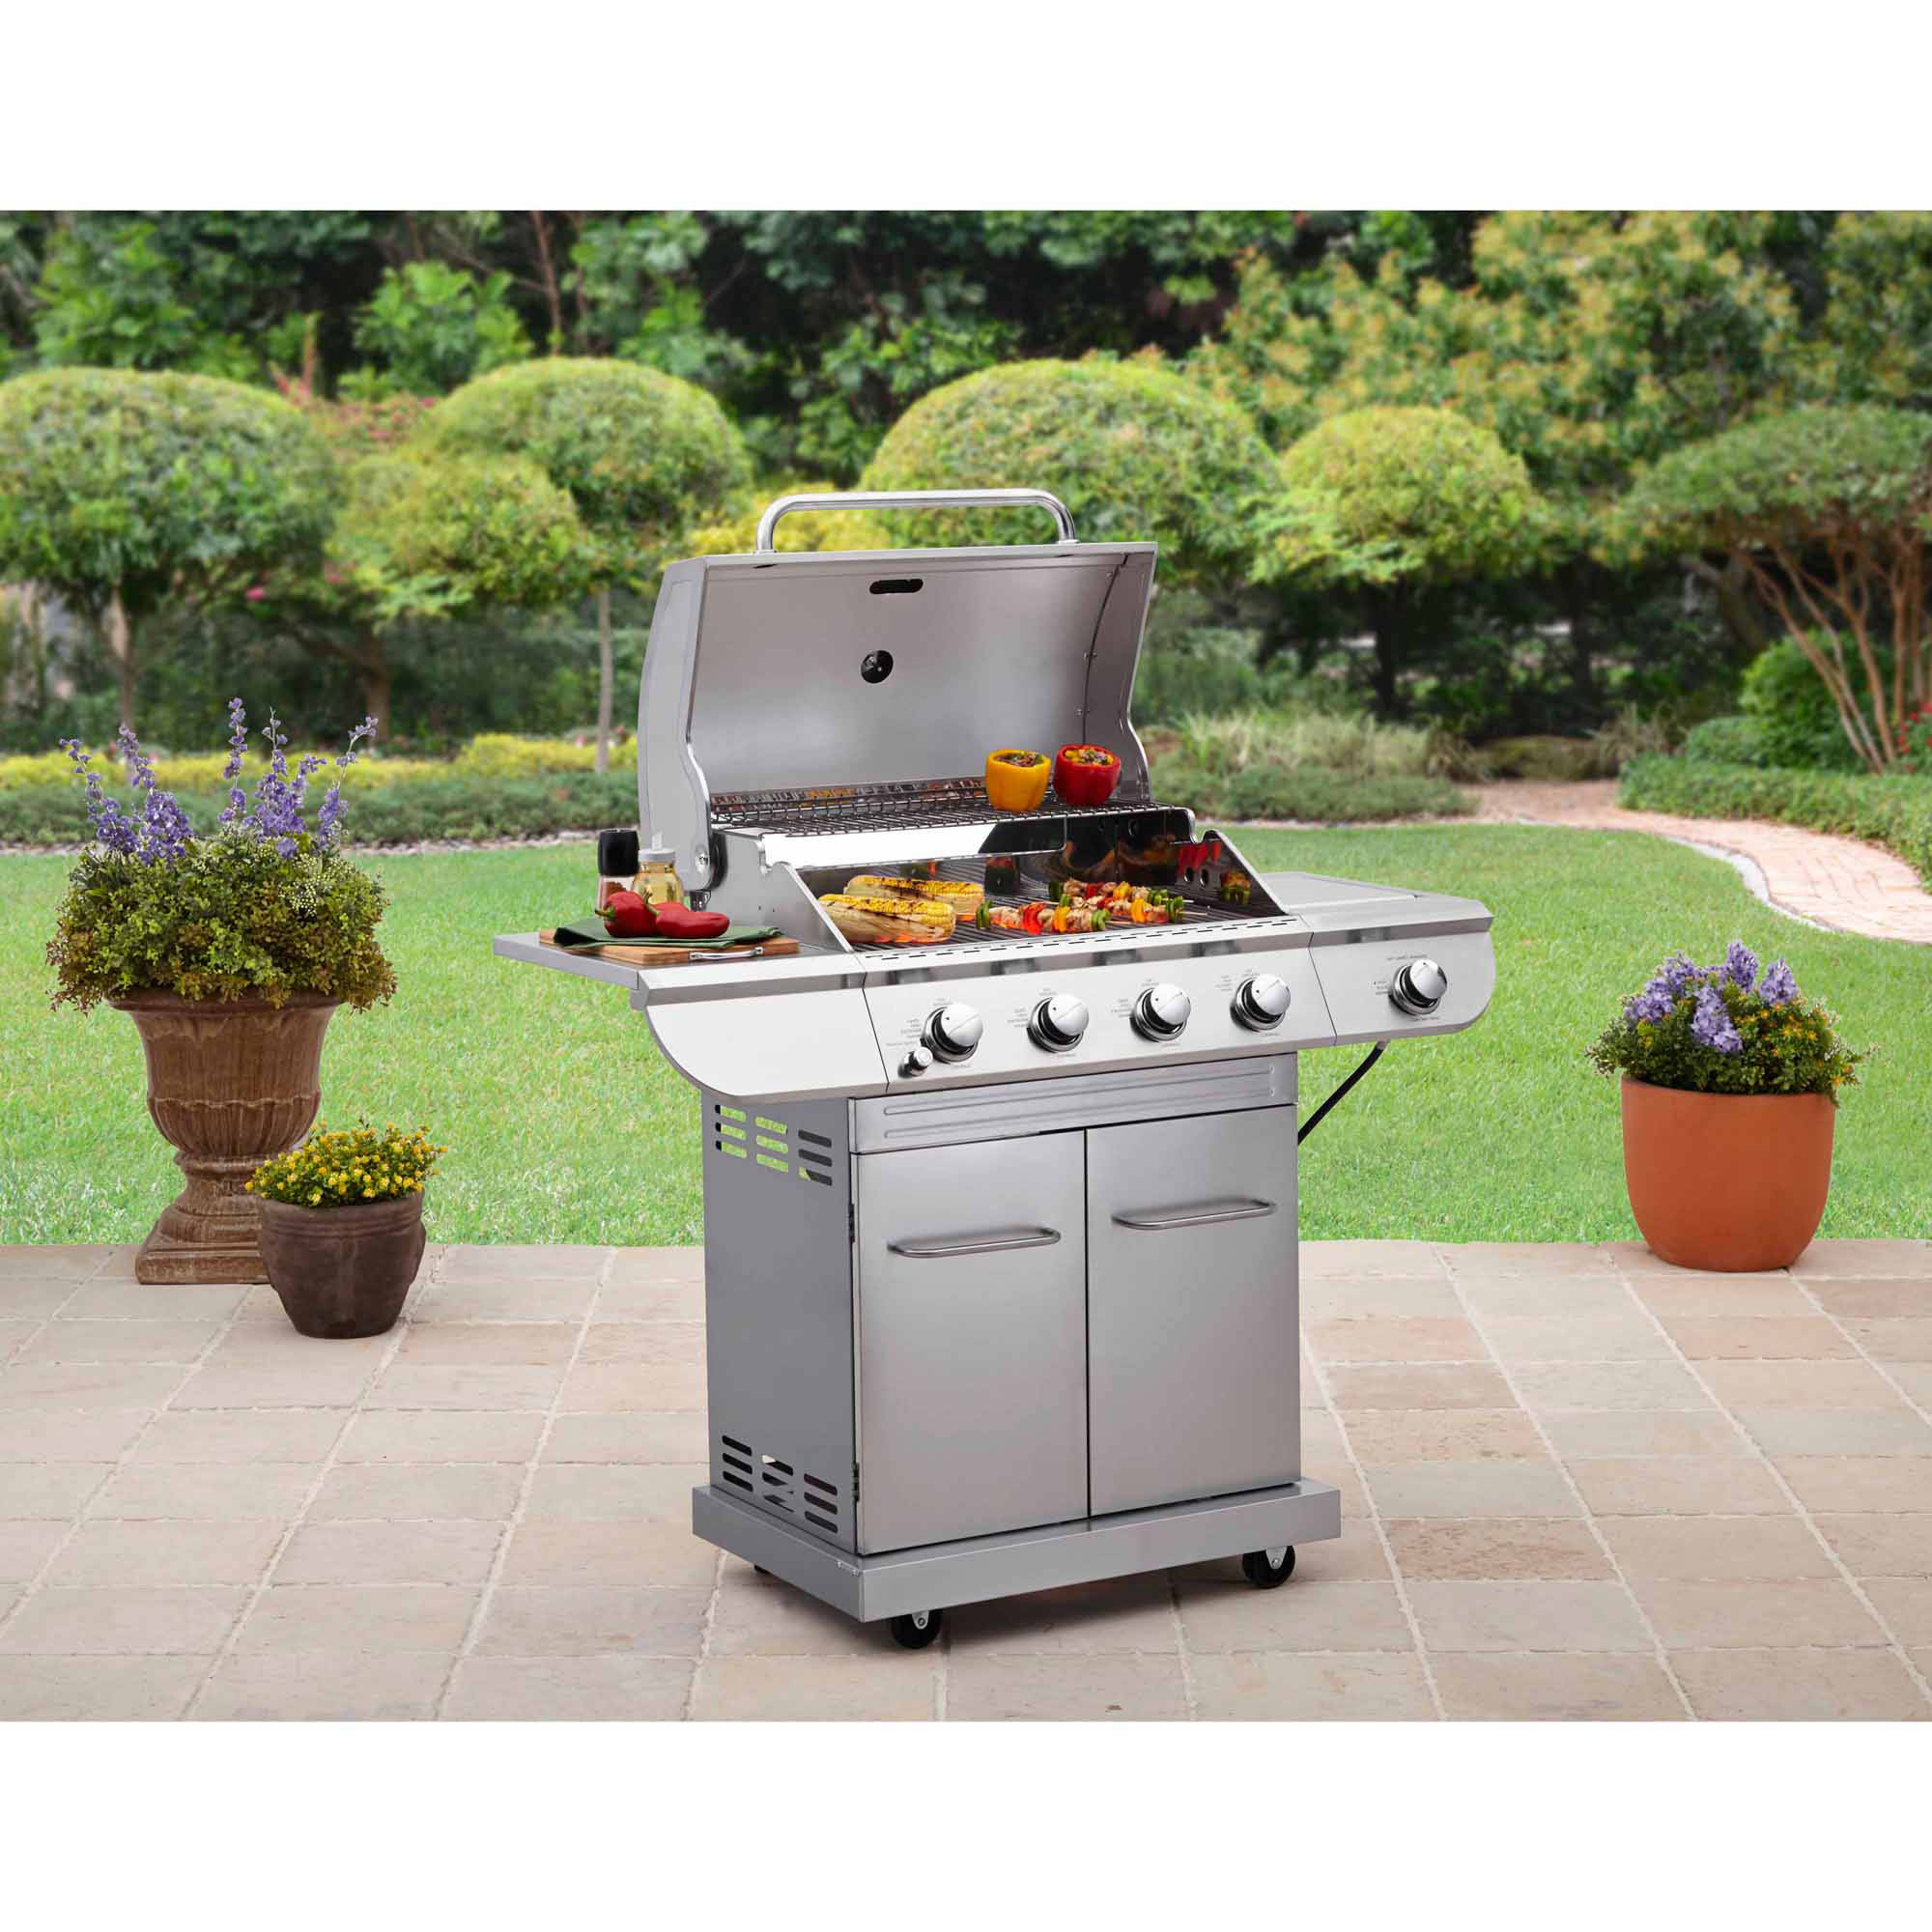 Better Homes and Gardens Stainless Steel 4-Burner Gas Grill with Side Burner